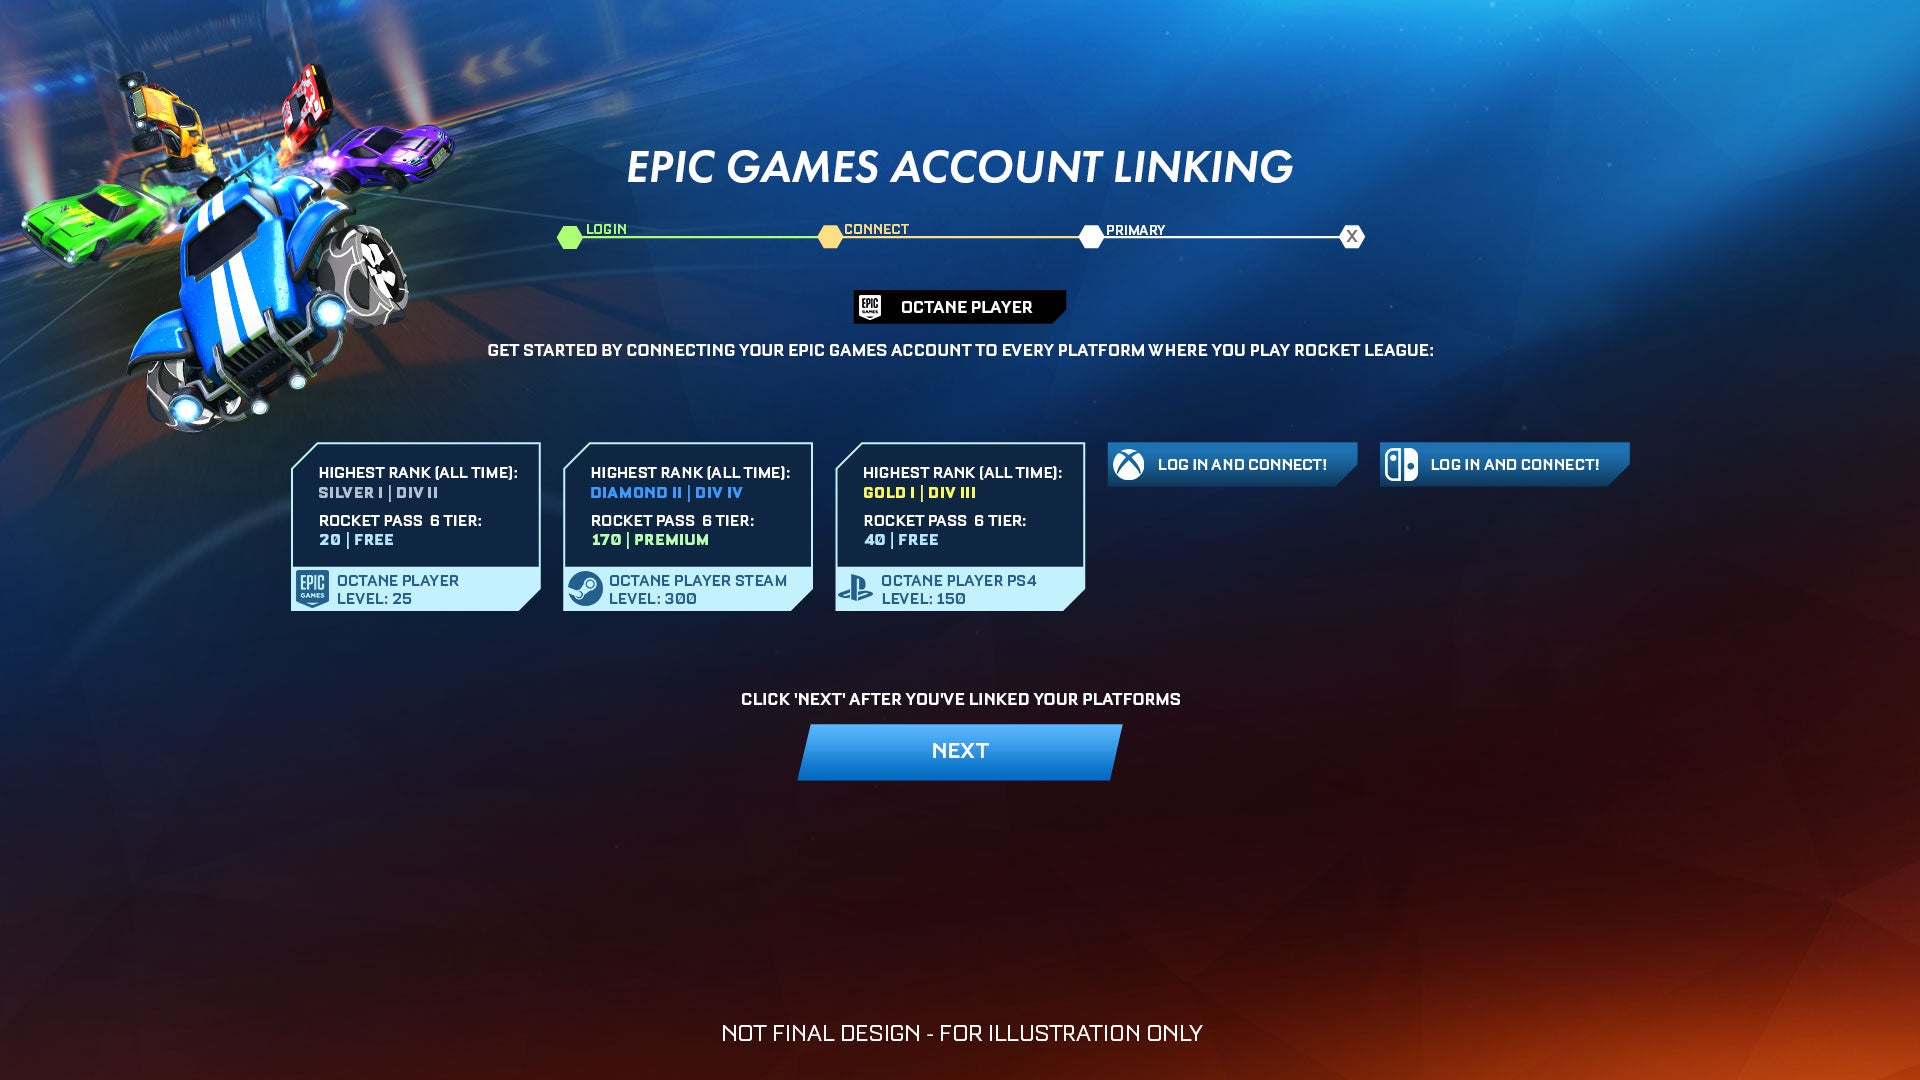 IMAGE(https://rocketleague.media.zestyio.com/rl_epic-link_steps_blog.jpg)